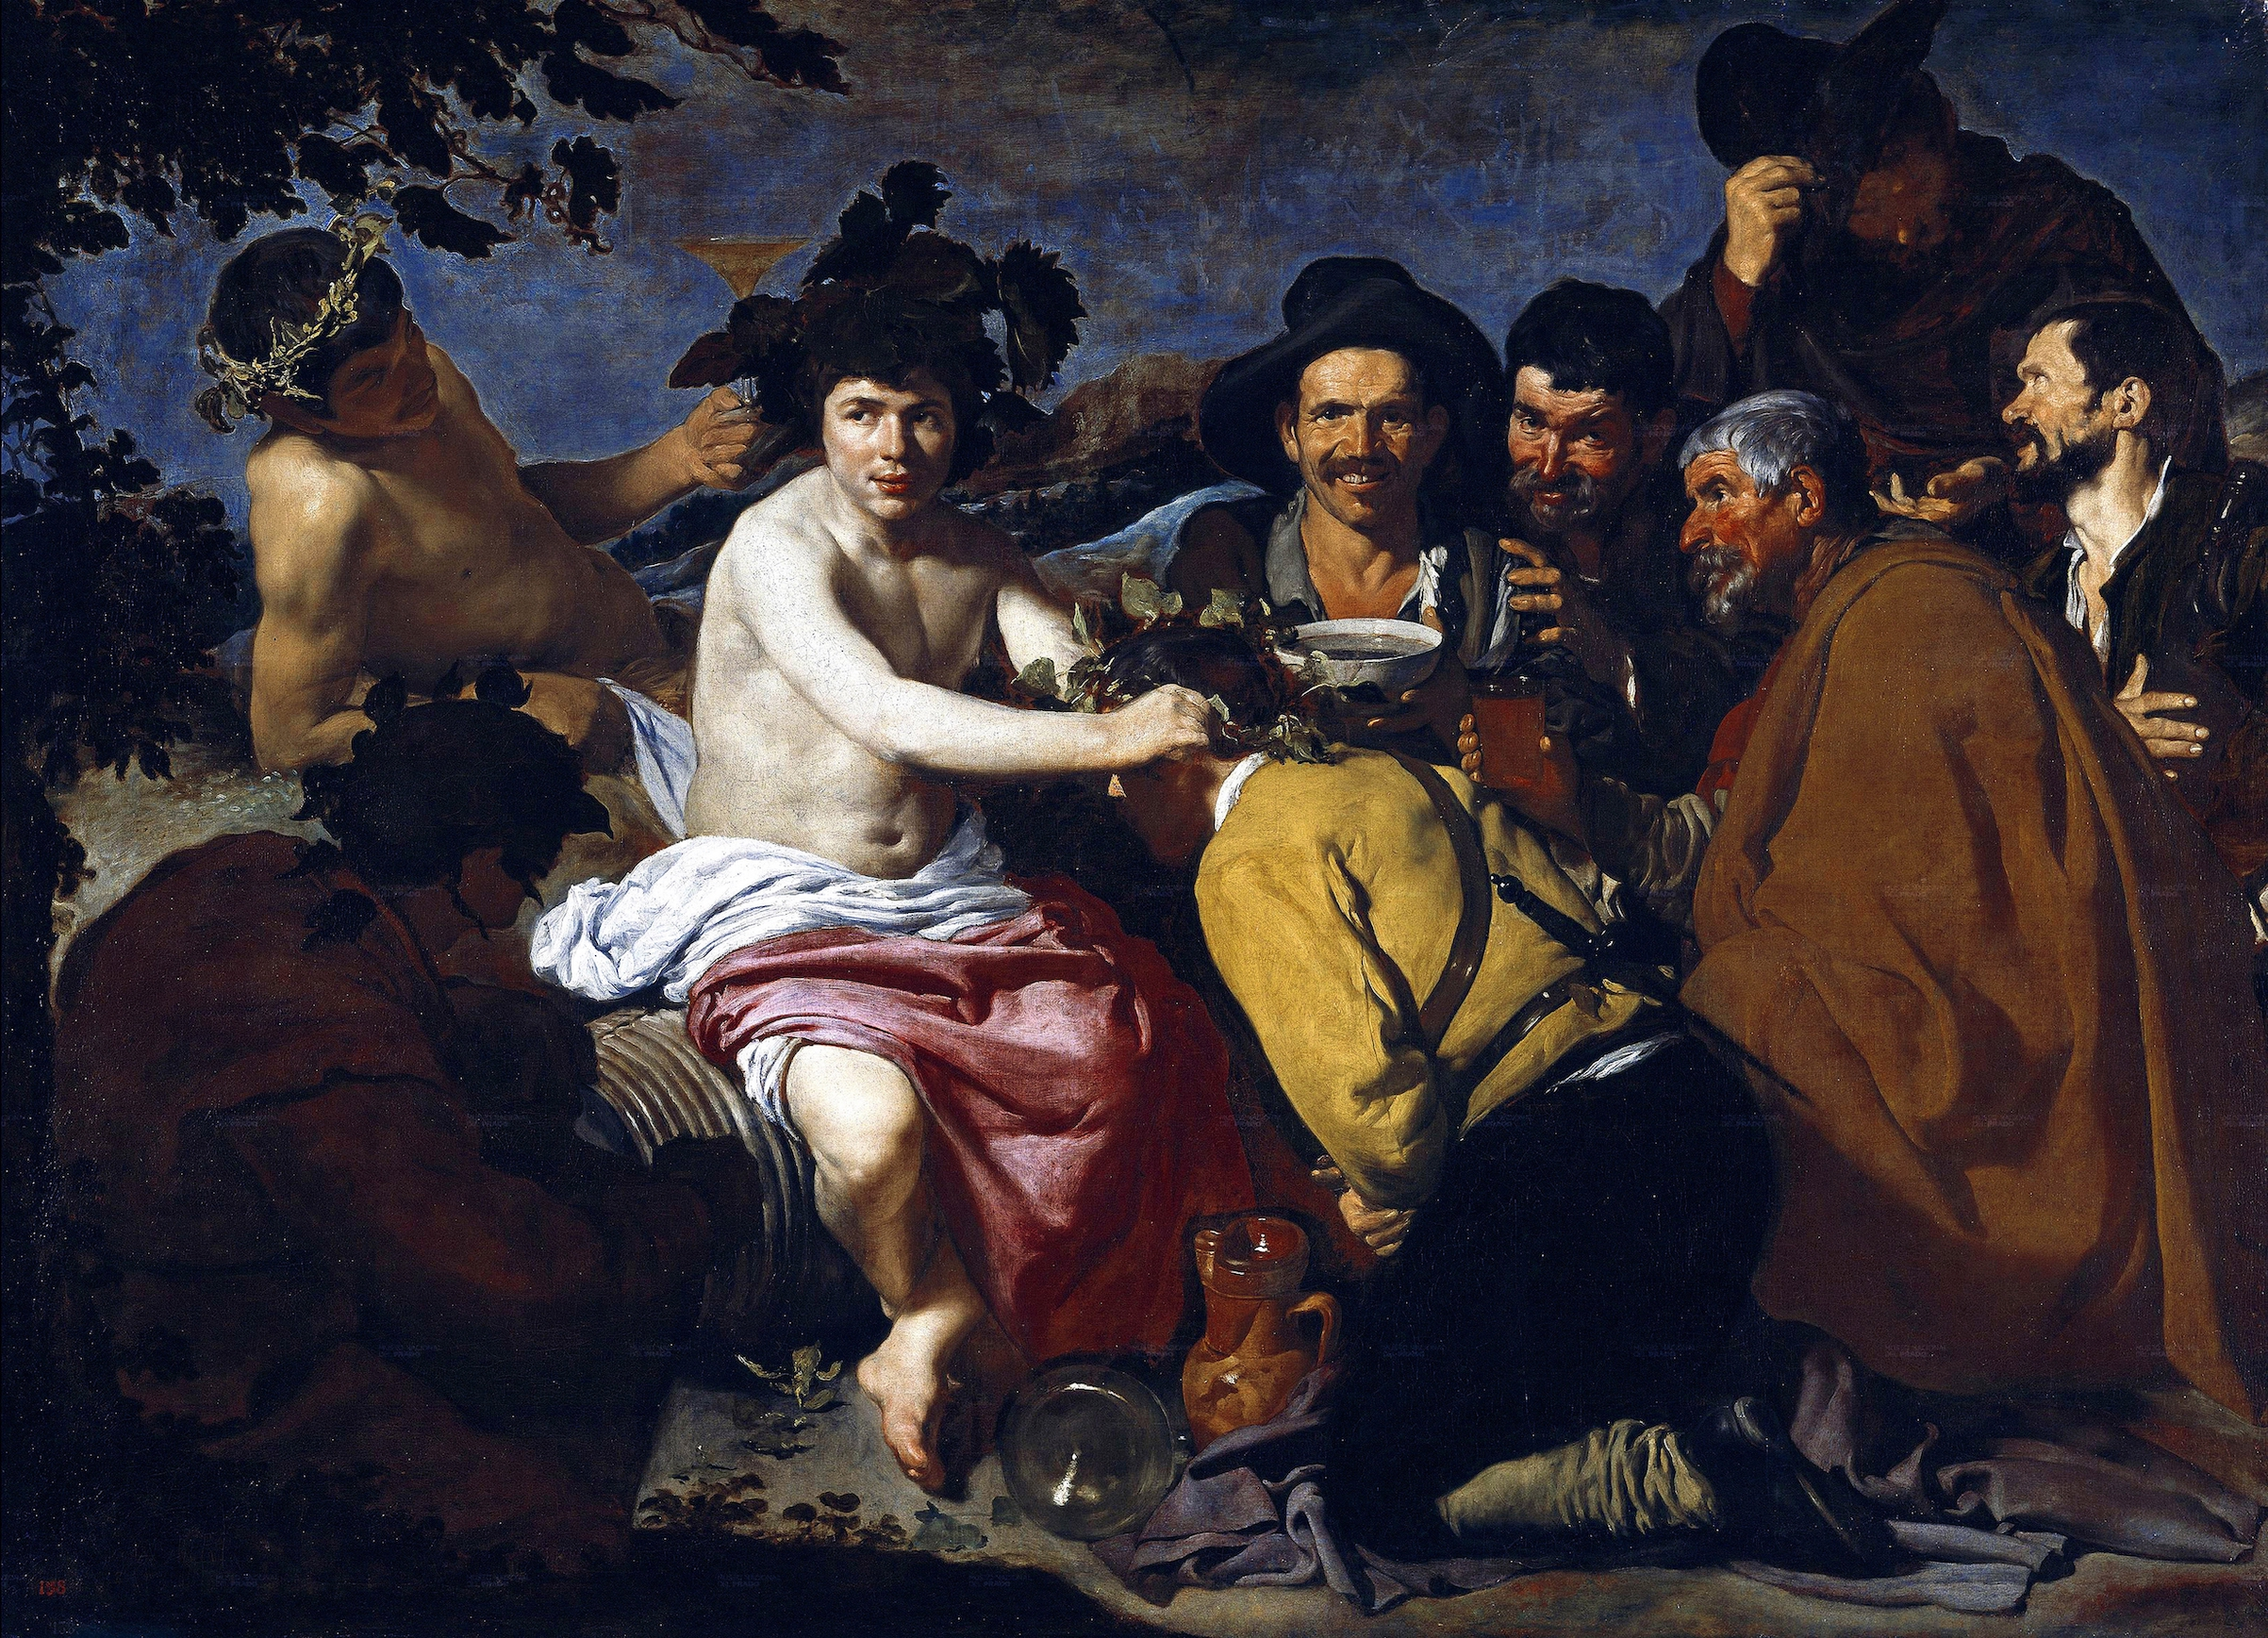 Diego Velazquez's 'The Triumph of Bacchus, or the Drunkards' (1628-29)